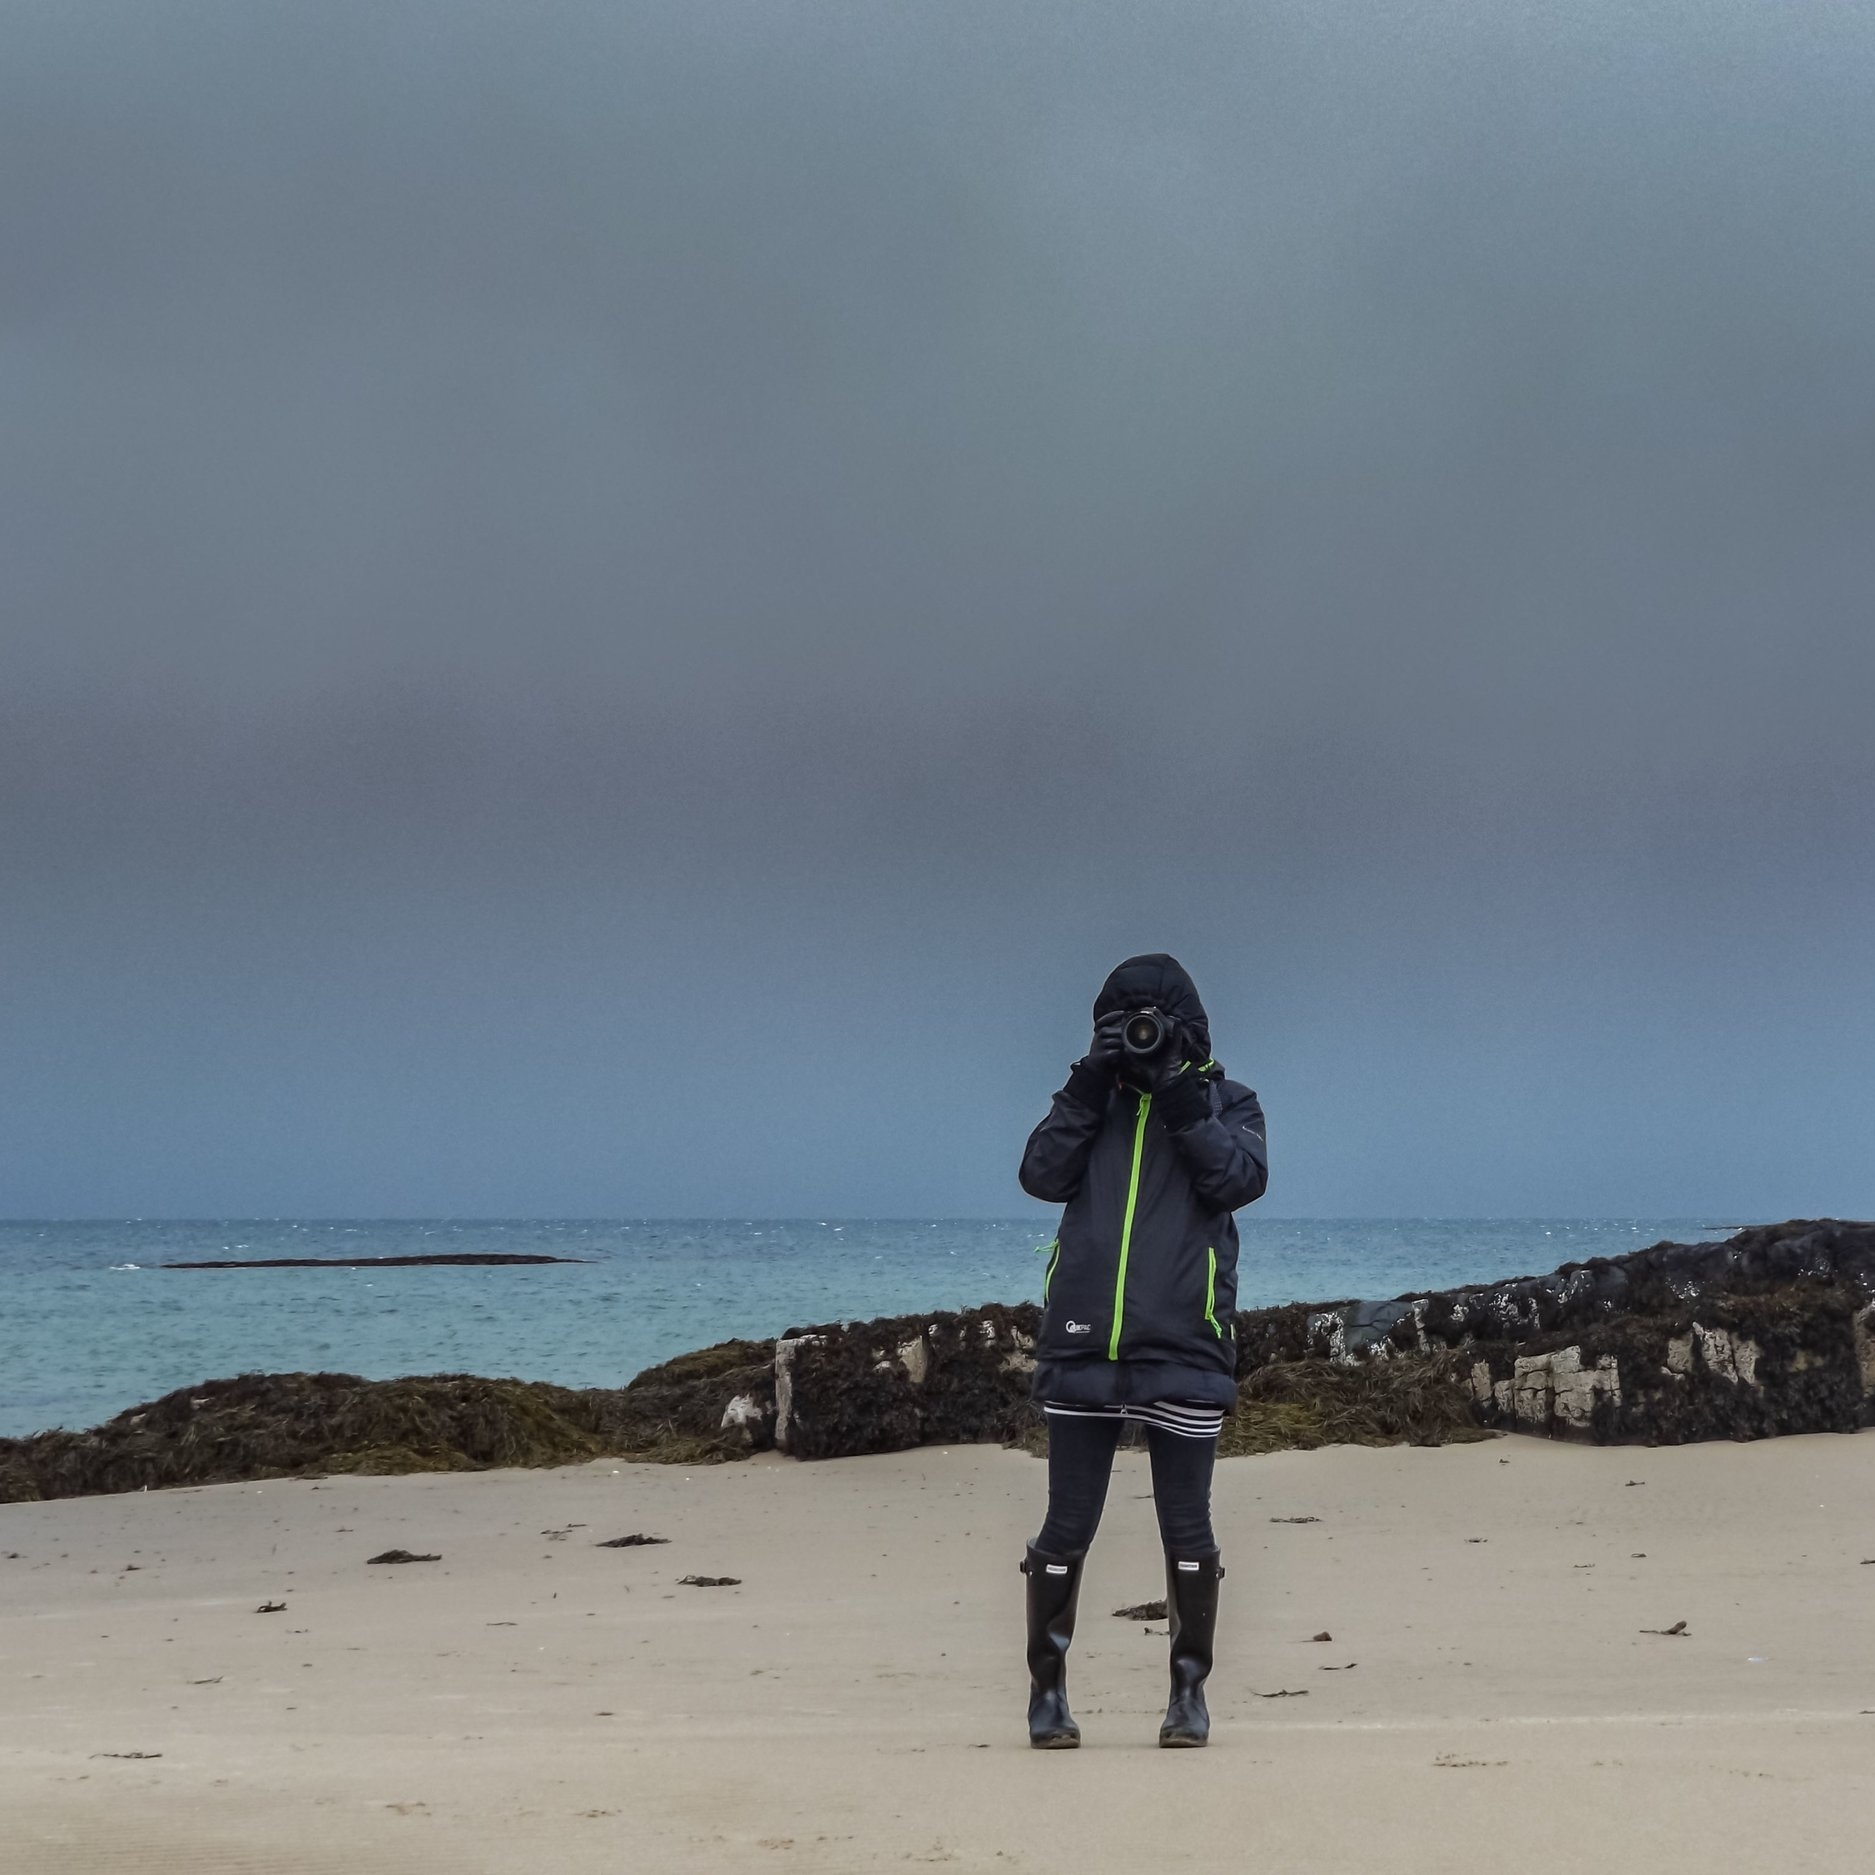 Five layers of clothing, wellies, gloves, bandy legs and an approaching storm that whipped sand in our faces as we tried to run from it. But there's always time for one more photo on Skye. Picture by Andrew Woodhouse. I particularly like the fact you can't see my face in this one.